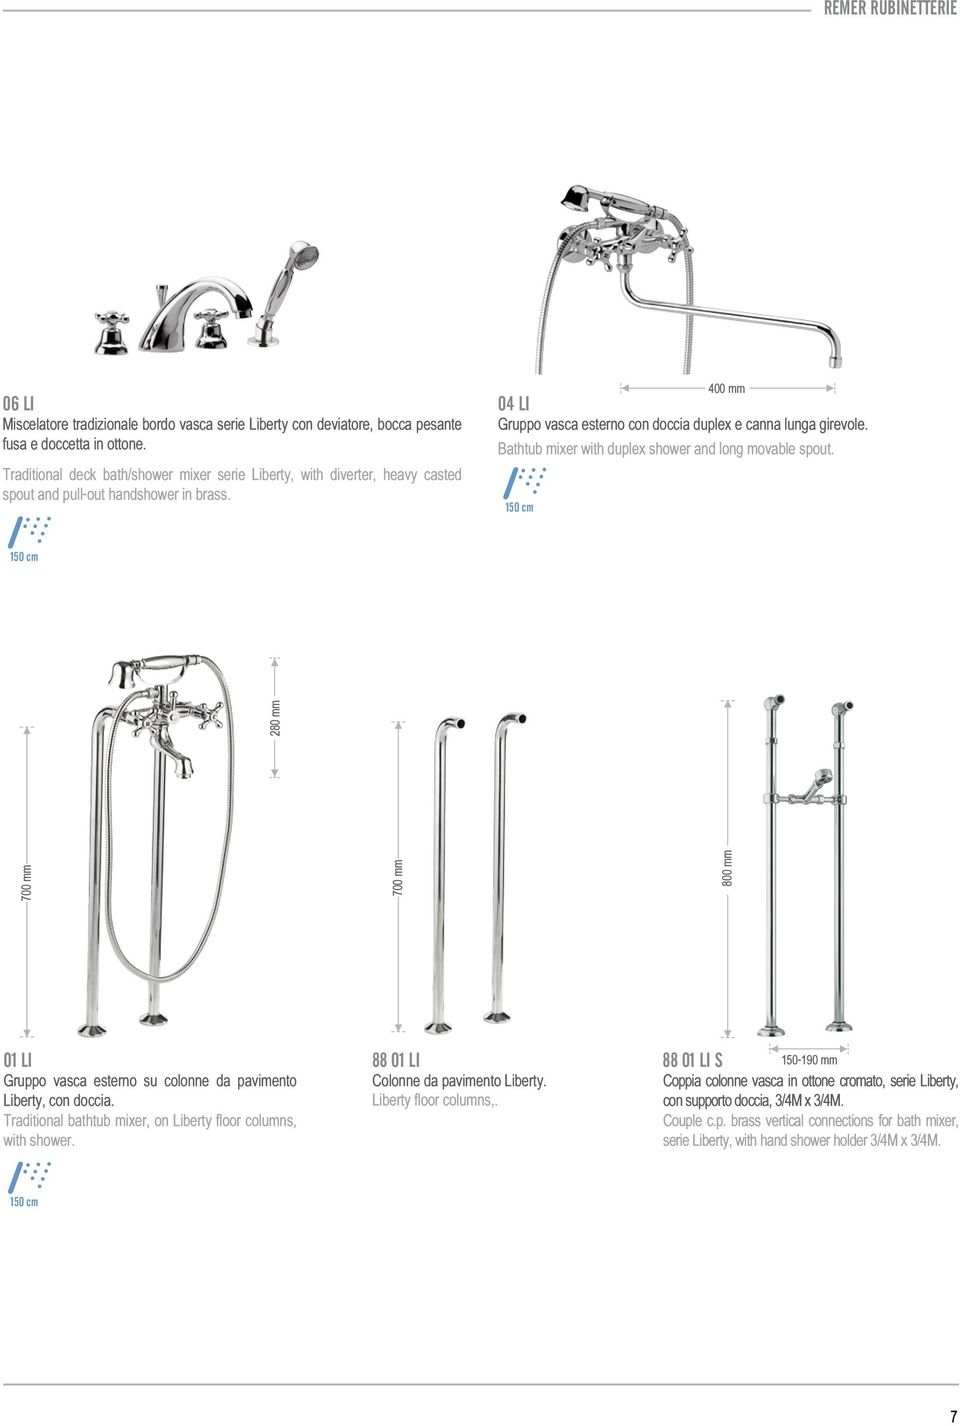 Bathtub mixer with duplex shower and long movable spout. 700 mm 700 mm 800 mm 280 mm 01 LI 88 01 LI Gruppo vasca esterno su colonne da pavimento Colonne da pavimento Liberty. Liberty, con doccia.